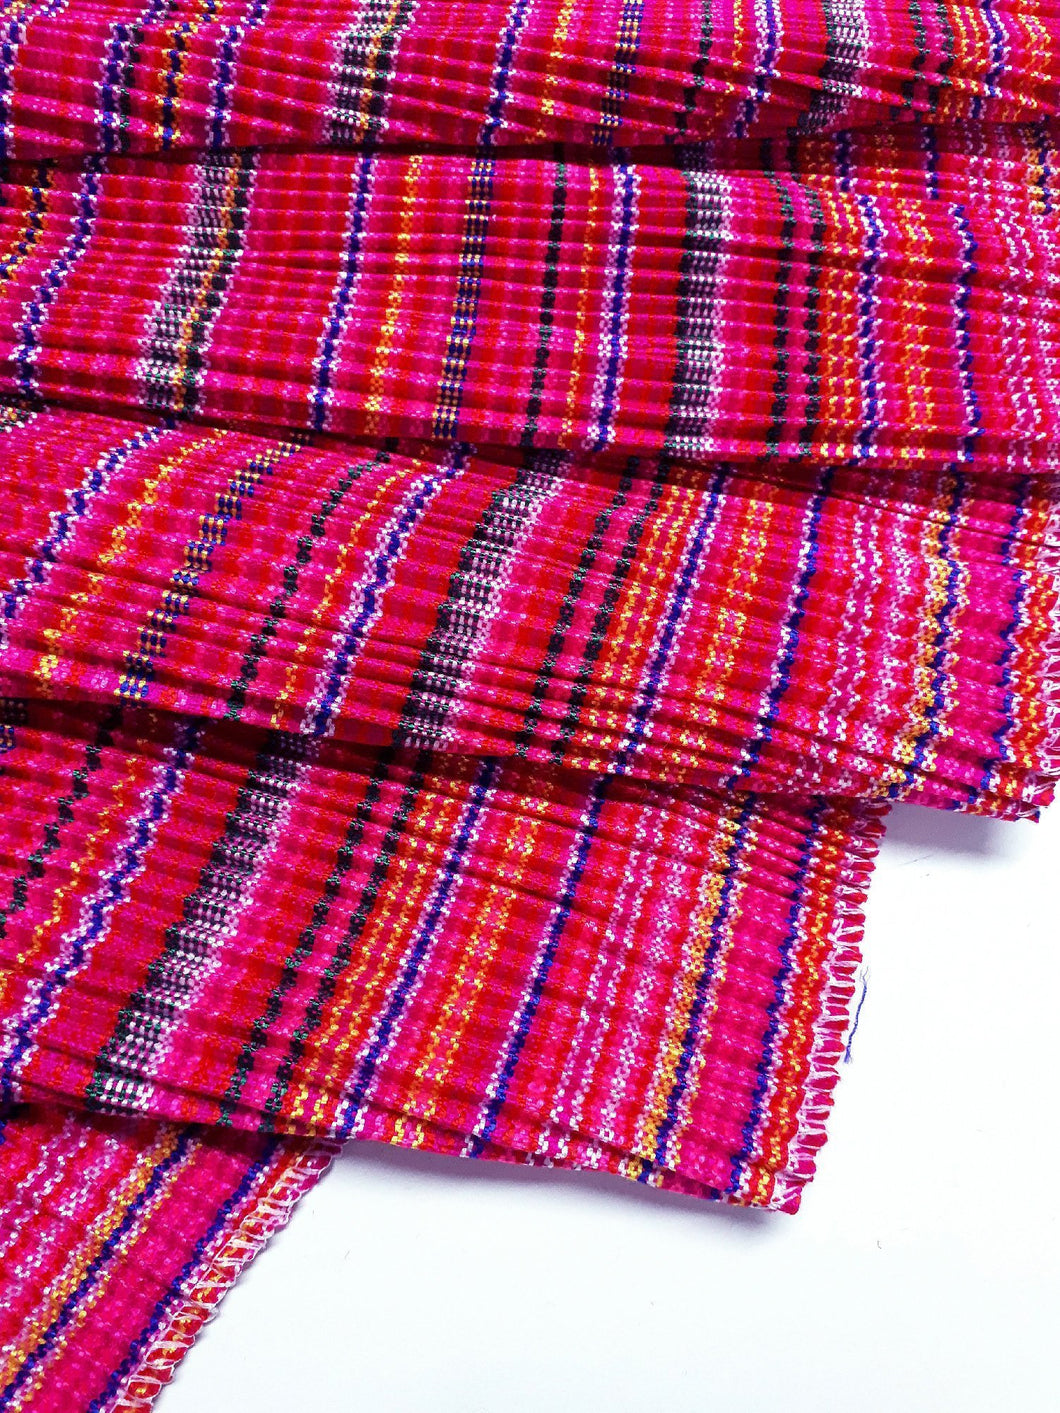 Hmong Fabric Colorful Pleat Fabric Fabric by the yard Hill Tribe Fabric Craft Supplies Woven Textile Vintage Cotton Tribal Fabric 1/2 yard Pink HP1